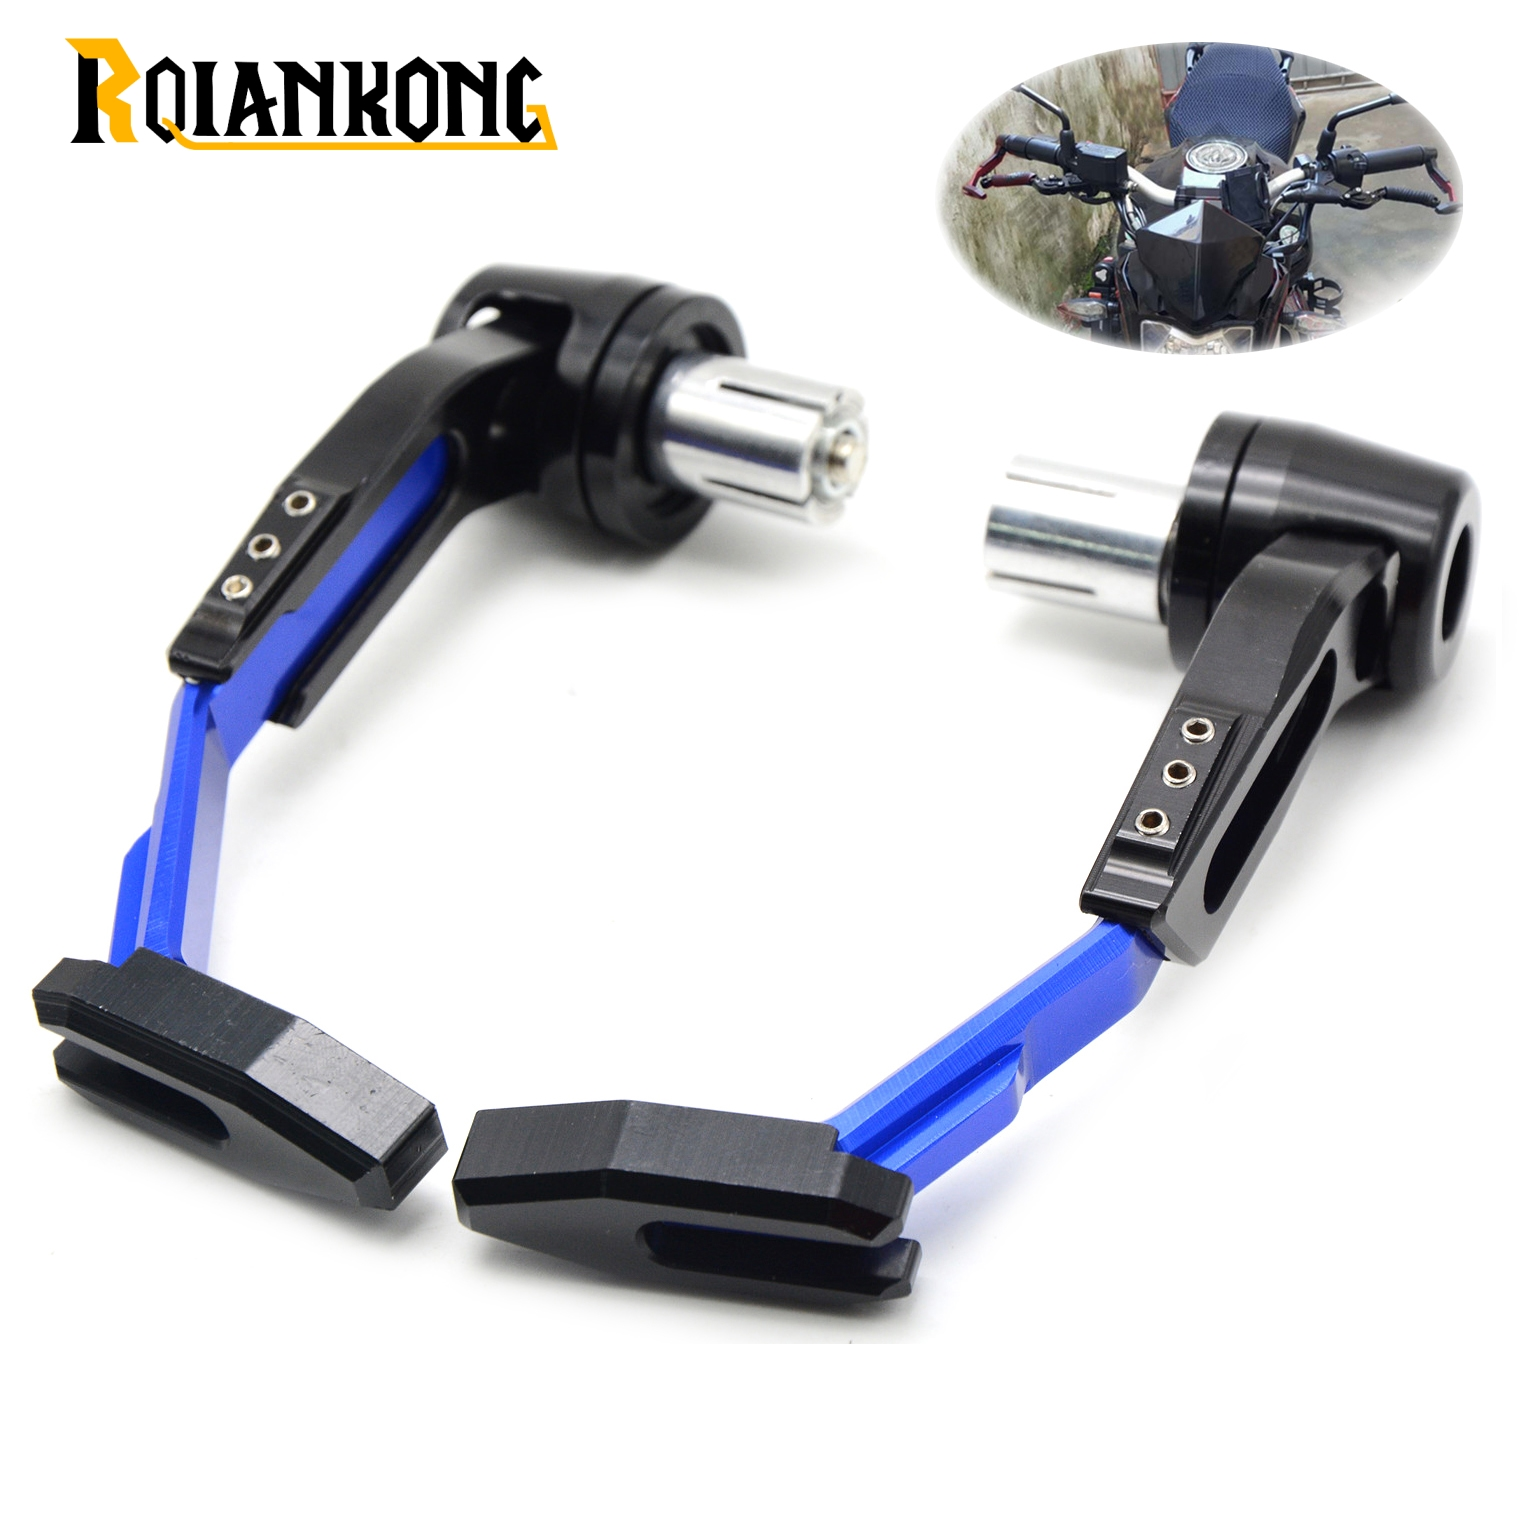 Universal 7/822mm Motorcycle Handlebar Clutch Brake Lever Protect Guard for Yamaha XT1200 Super Tenere/ES XT660 R/X/Z Tenere for 22mm 7 8 handlebar motorcycle dirt bike universal stunt clutch lever assembly cnc aluminum